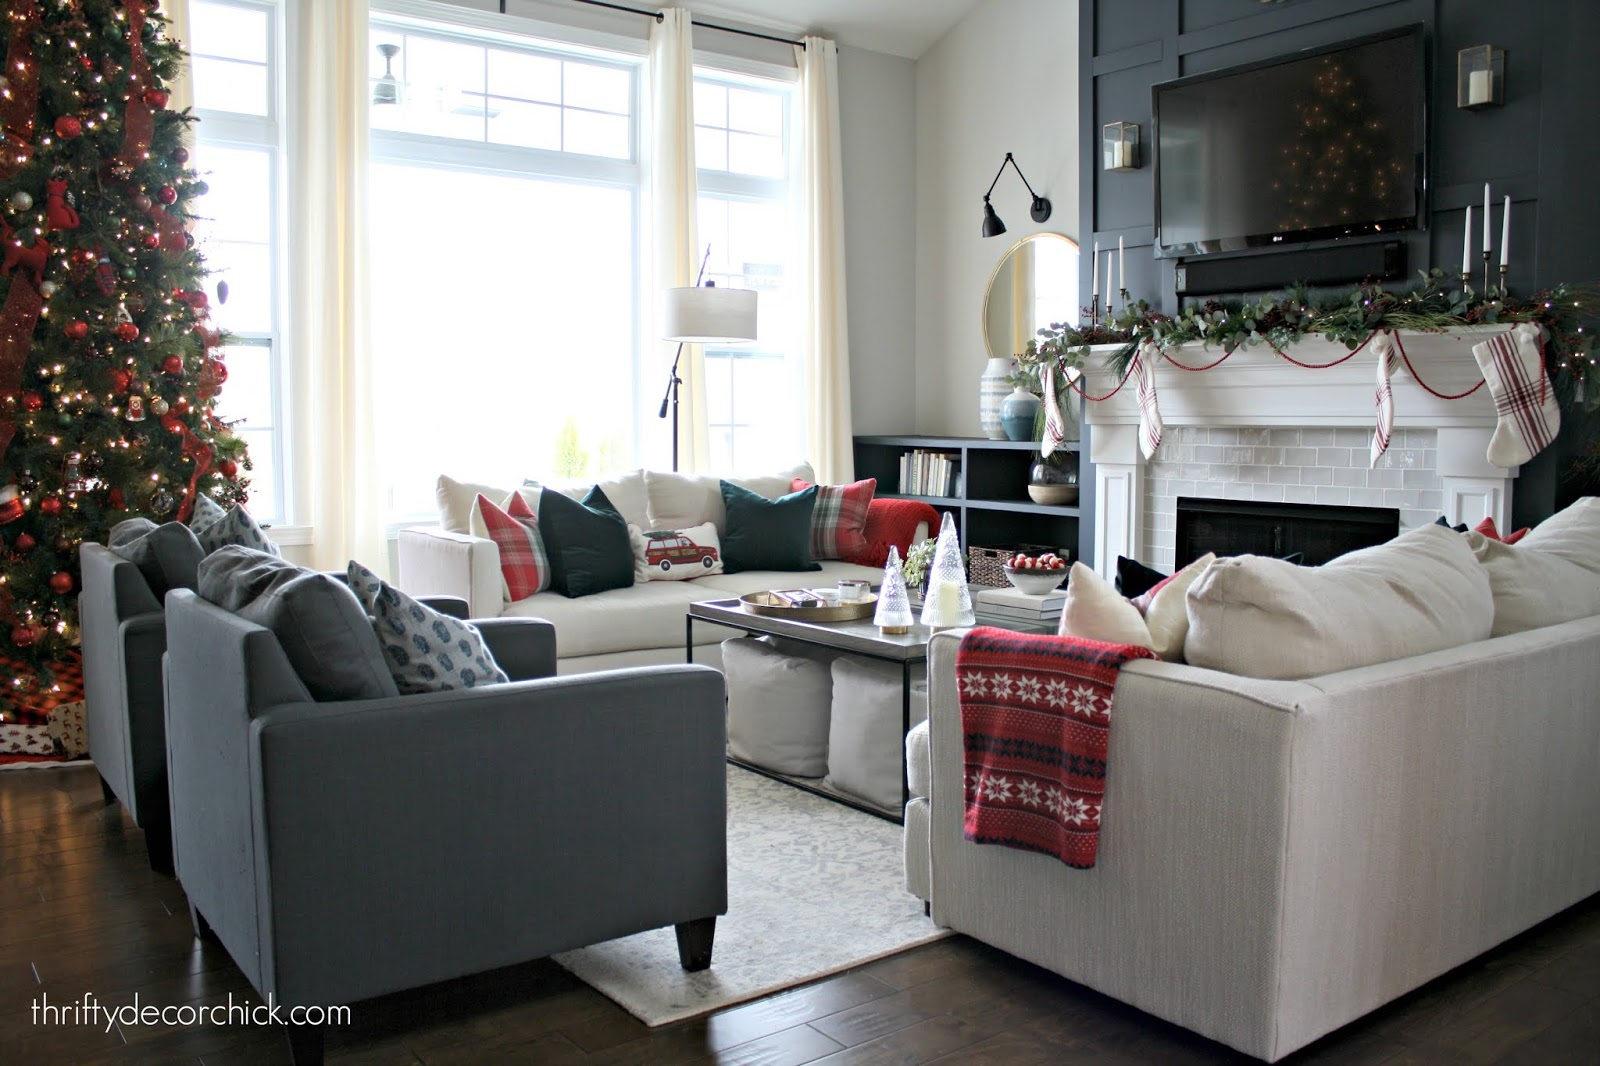 Decorating with red for Christmas